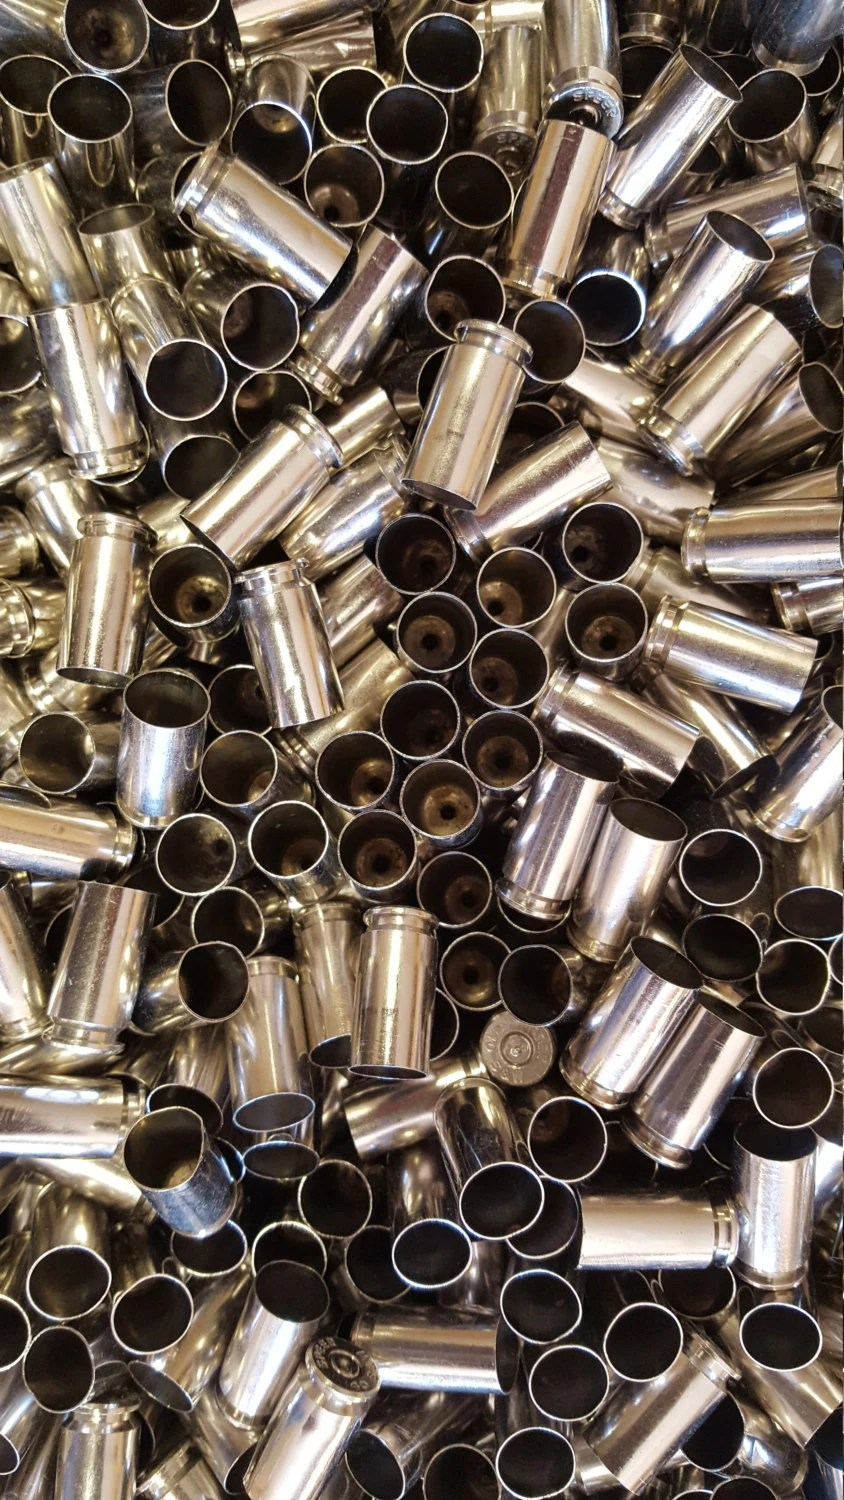 40 SW Once Fired Nickel Plated Brass 350 Pieces This Brass